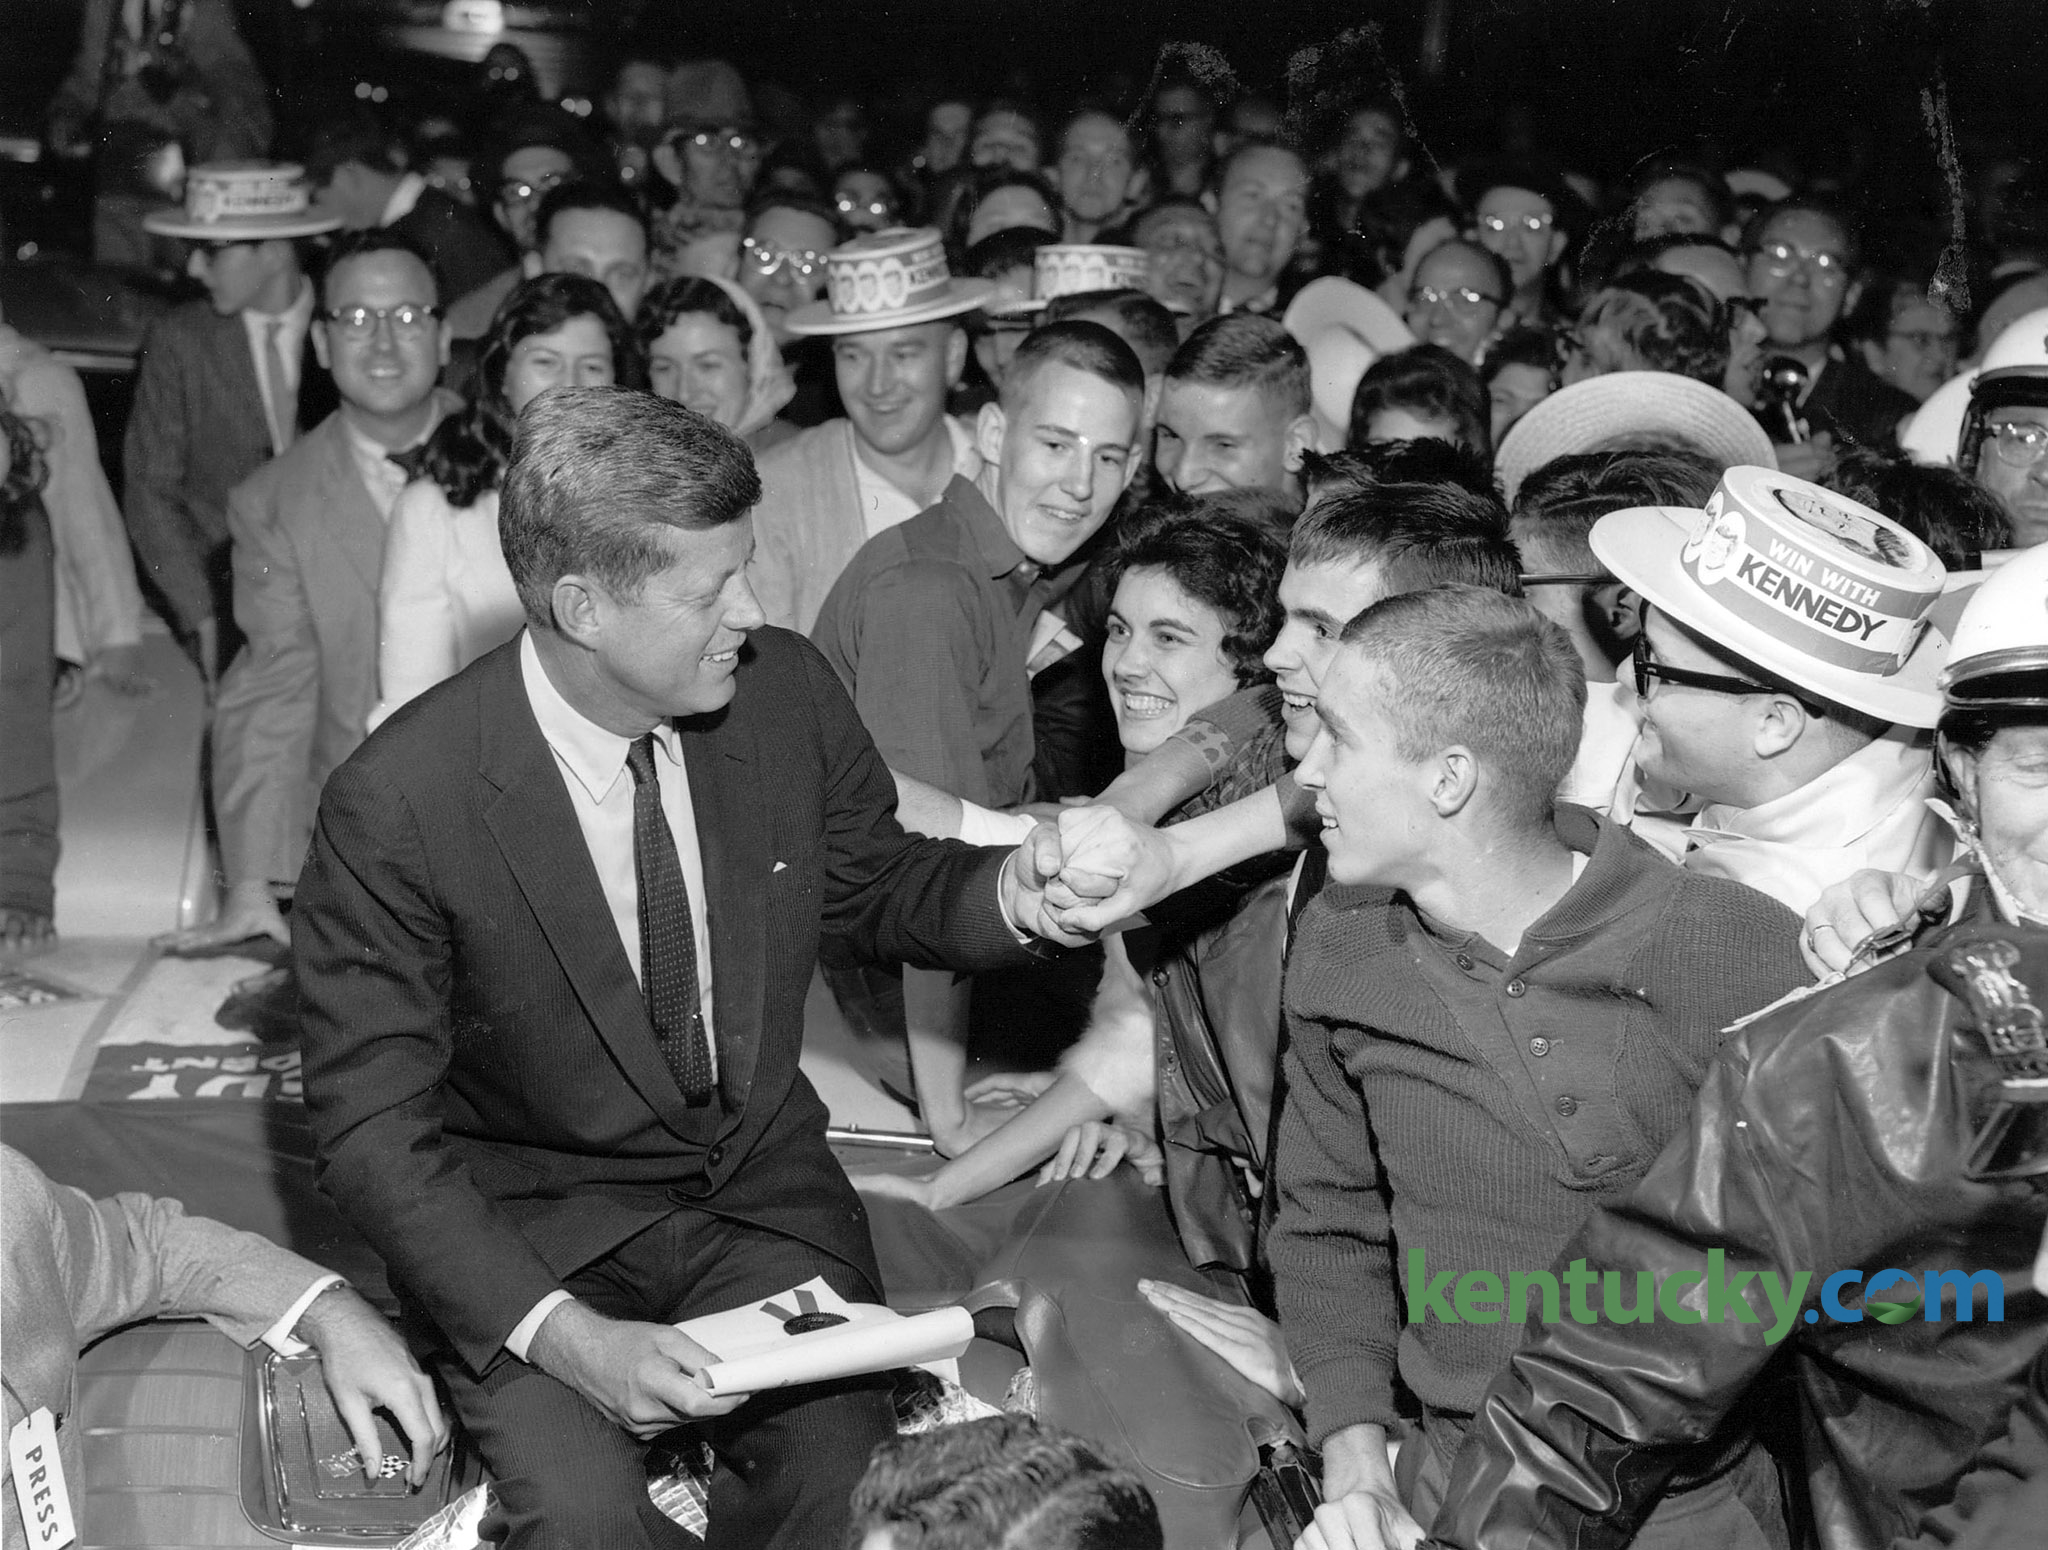 Jfk Campaigns In Lexington 1960 Kentucky Photo Archive